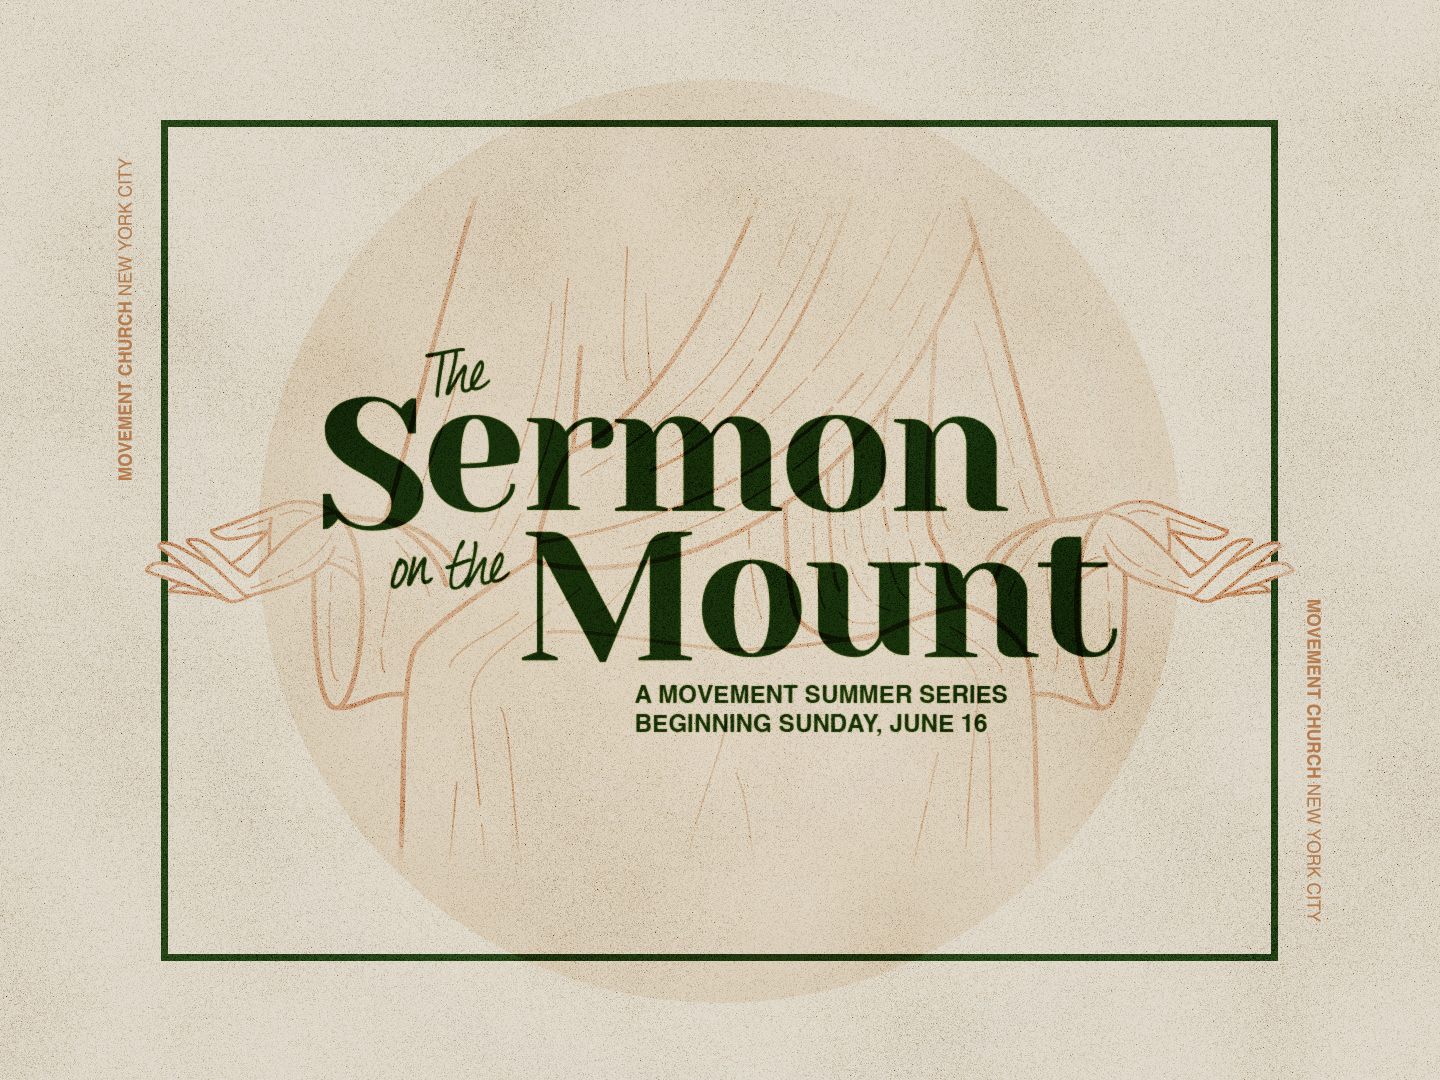 Sermon on the Mount_1440x1080_02.jpg